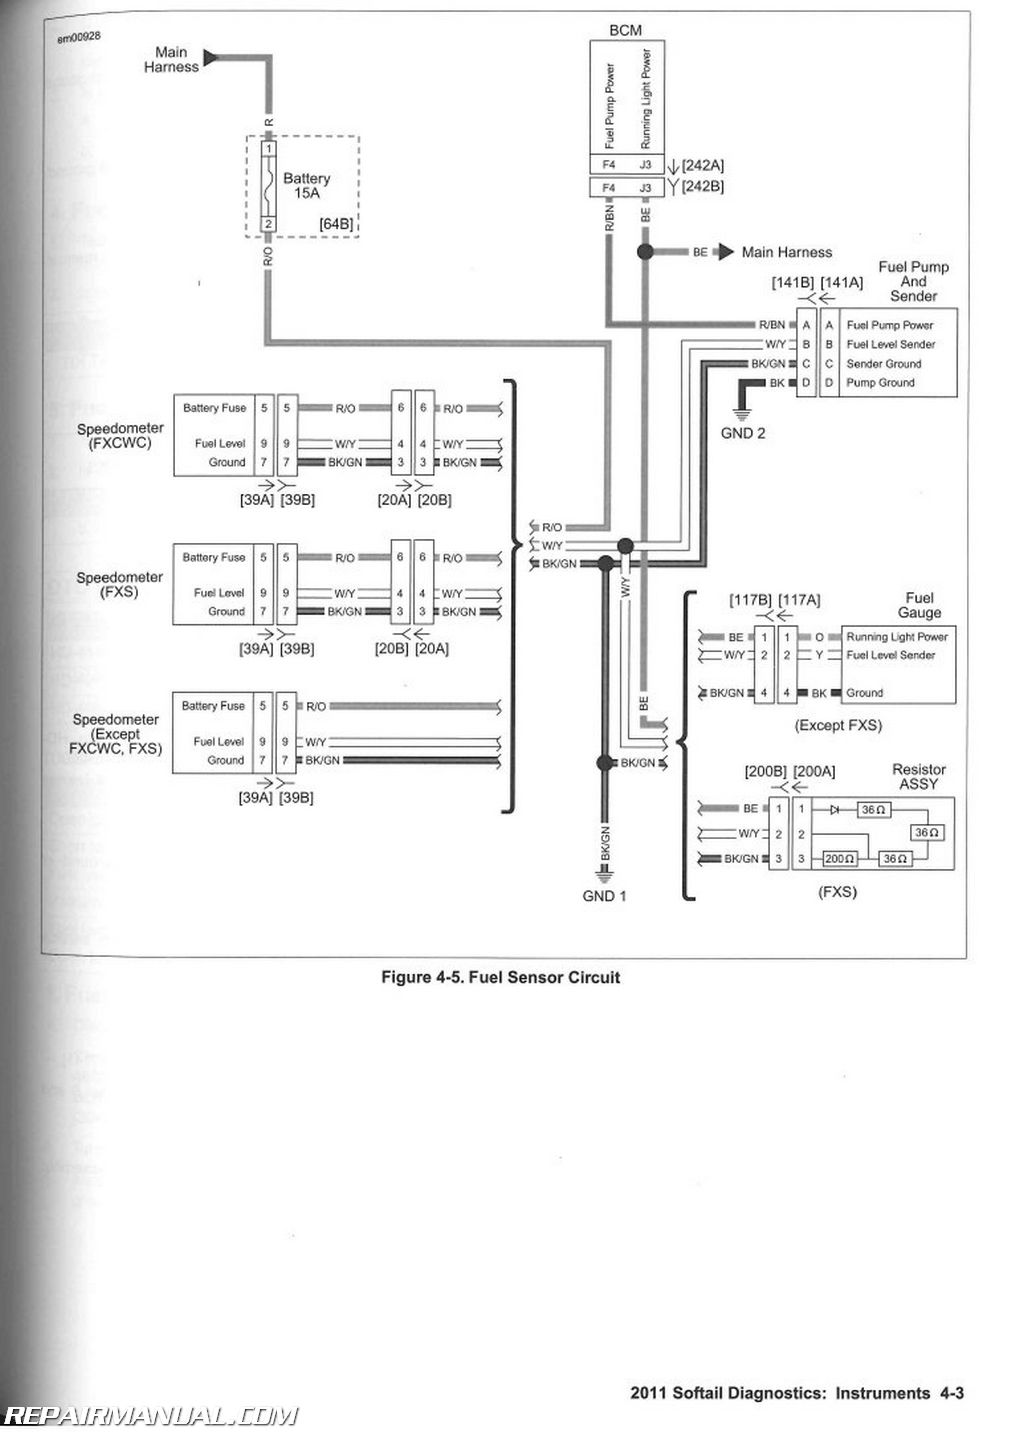 Harley Speed Sensor Wiring Diagram from www.repairmanual.com